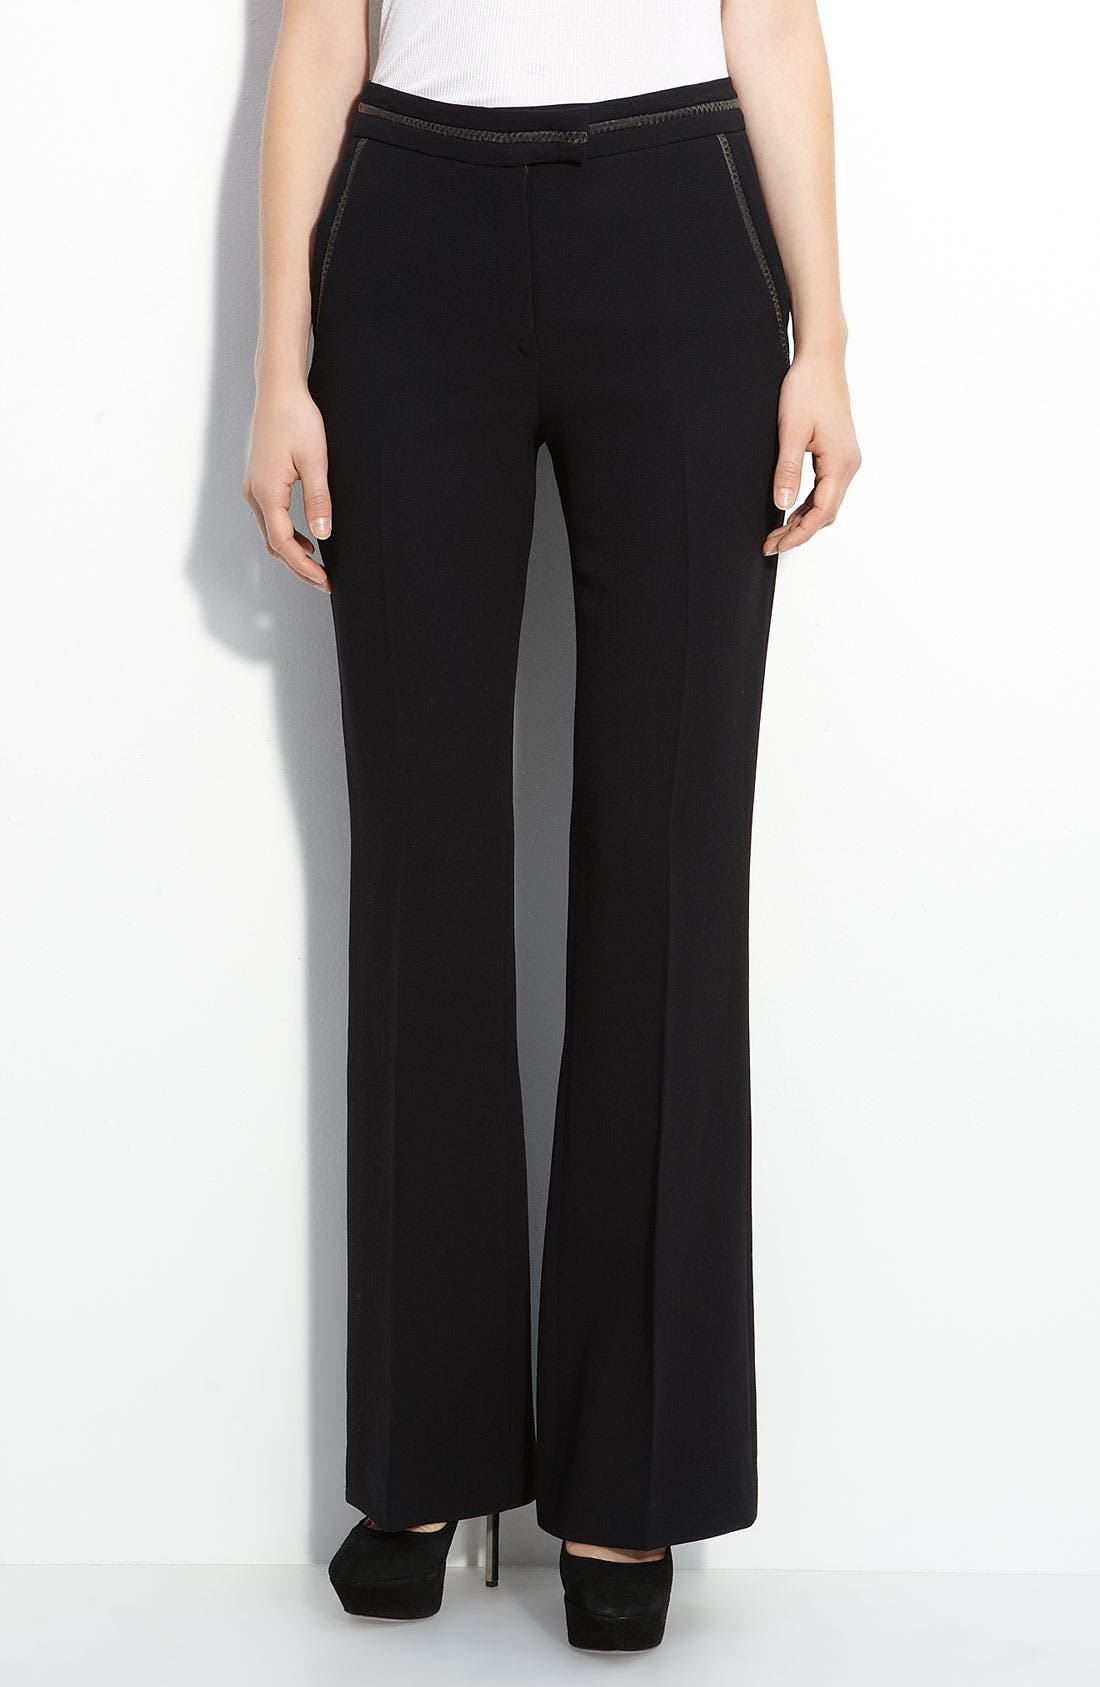 Alternate Image 1 Selected - Elizabeth and James 'Amelia' Flare Leg Wool Blend Trousers